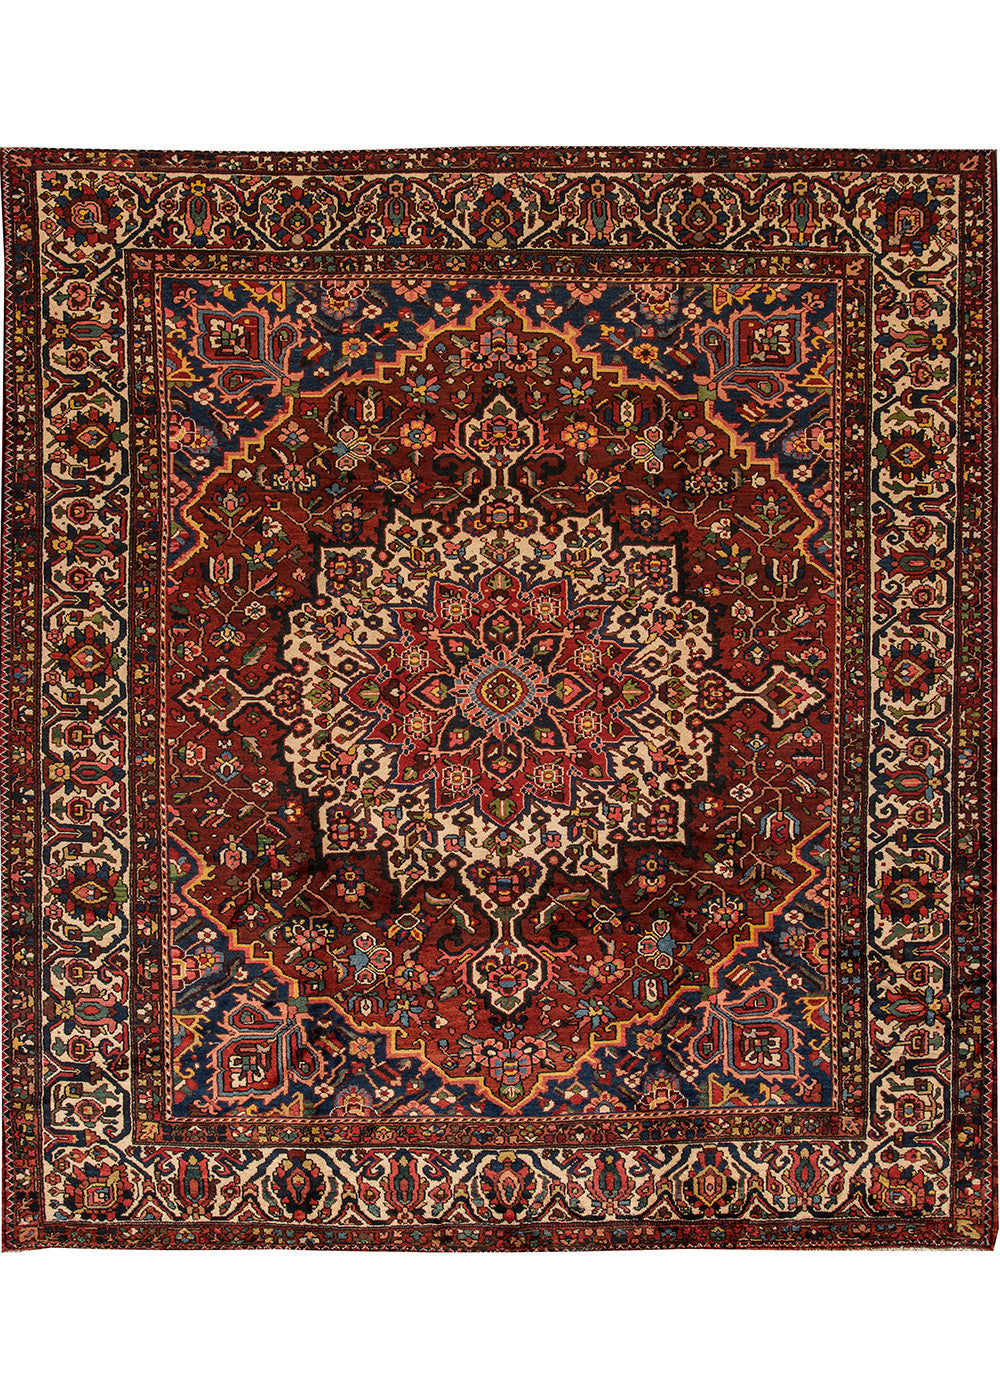 Antique Bakhtiari Rug, 11X12